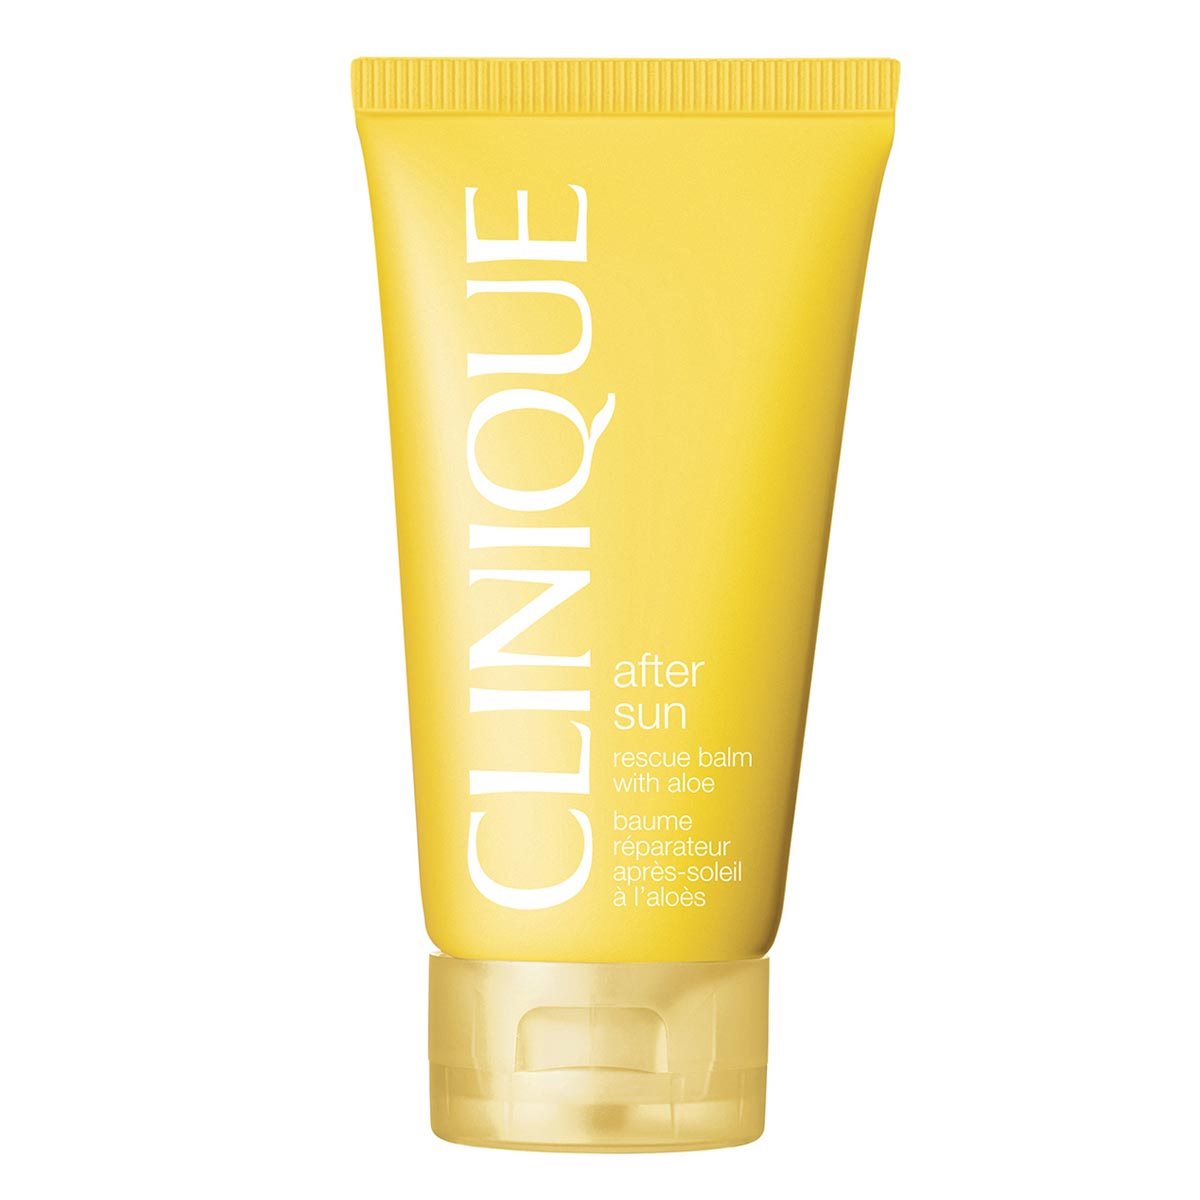 Clinique after sun rescue balm 150ml